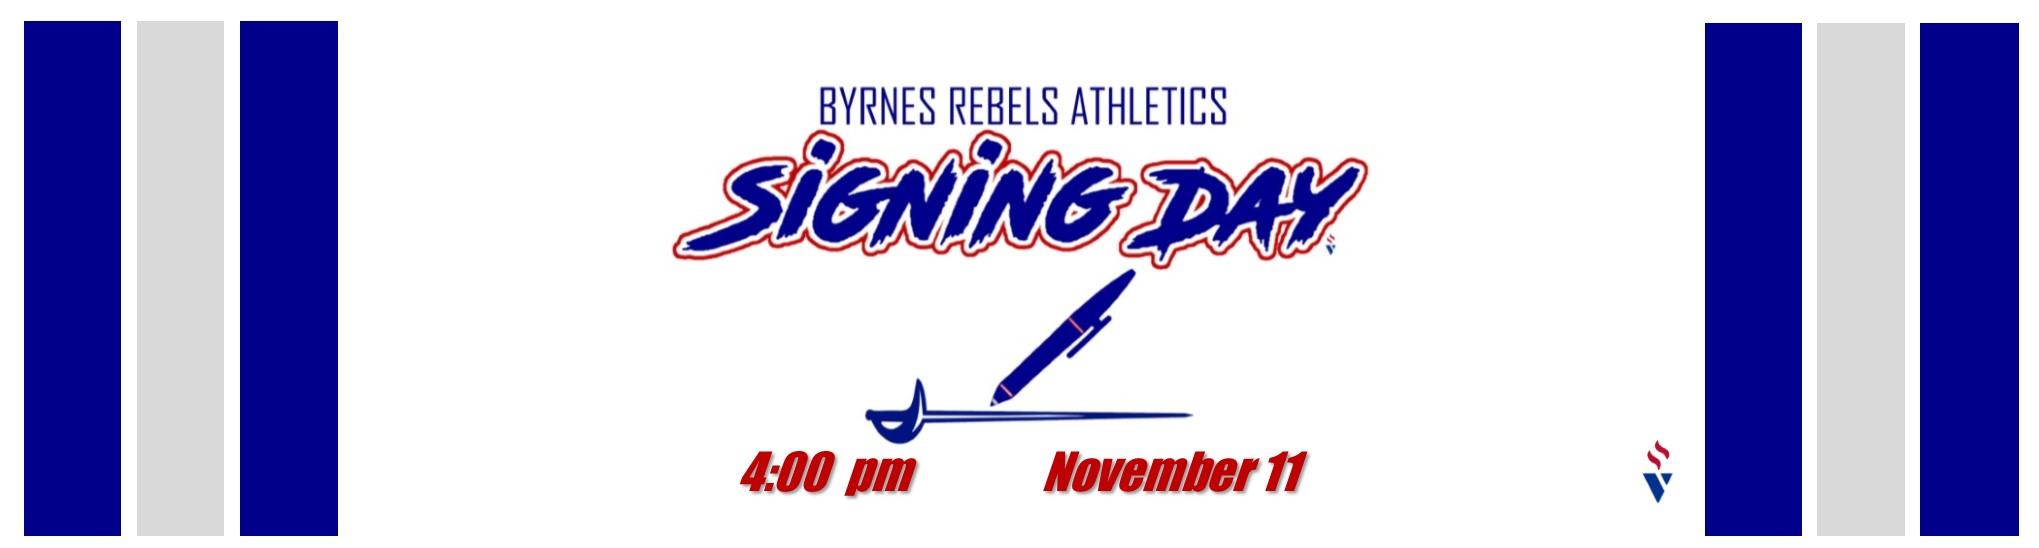 Signing Day is Nov. 11